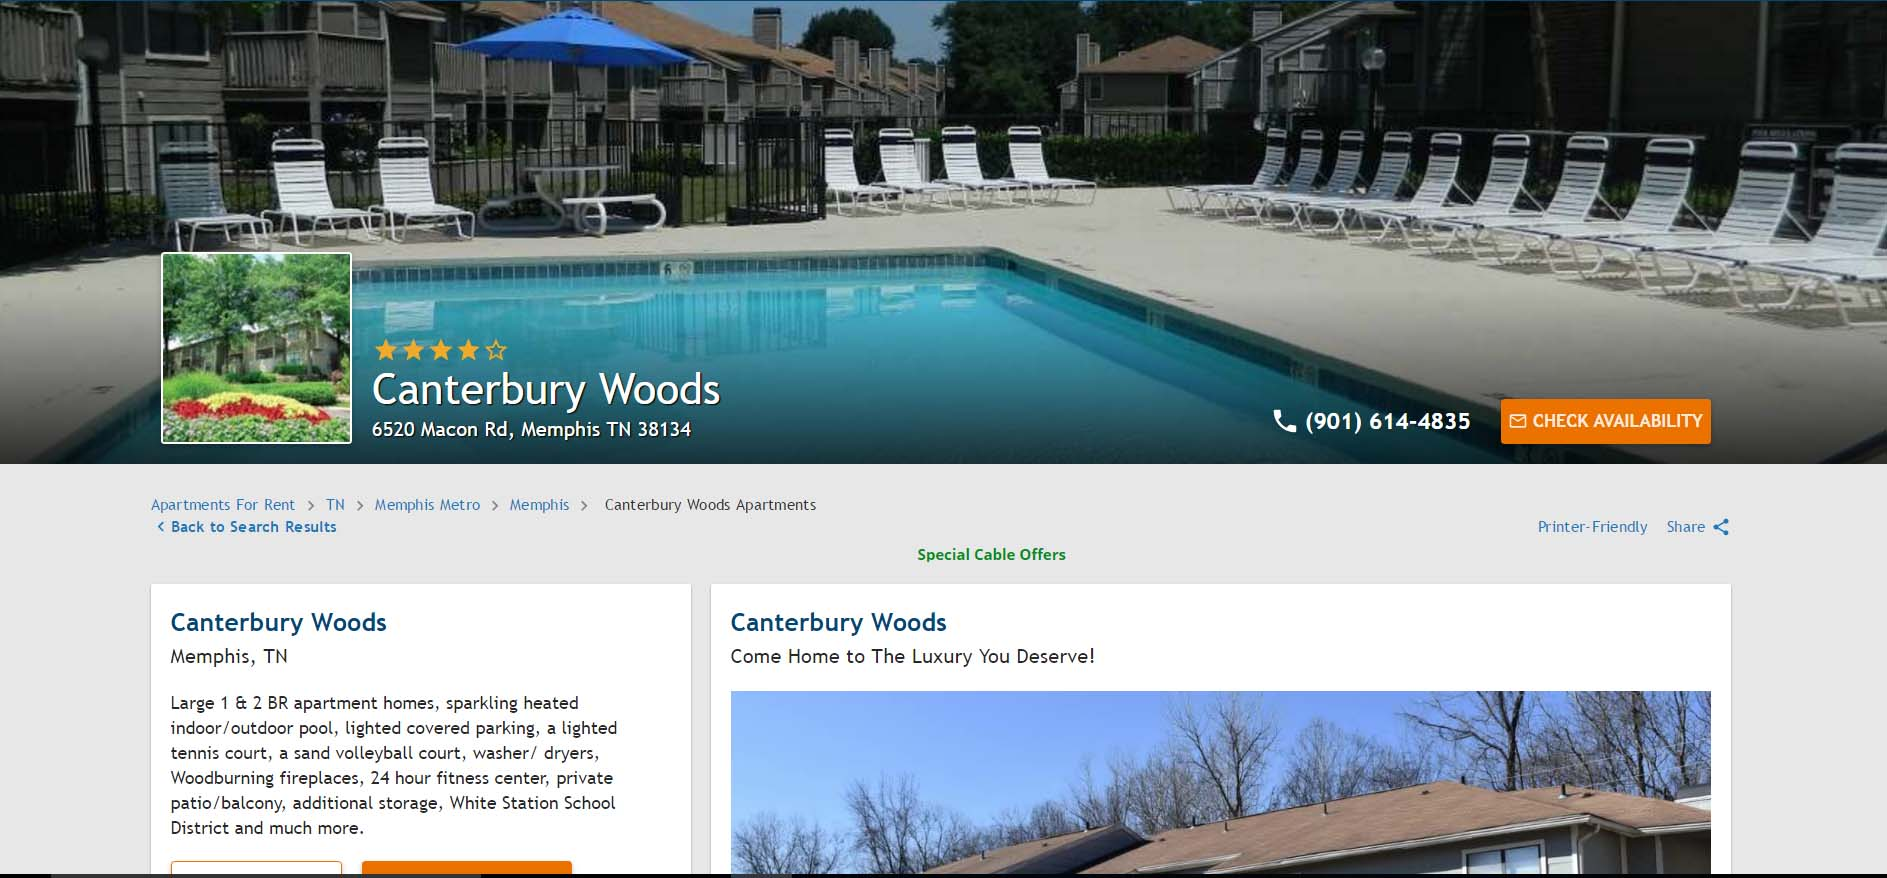 Get $150.0 if you signup using my referral at Canterbury Woods Apartments Memphis, Tennessee